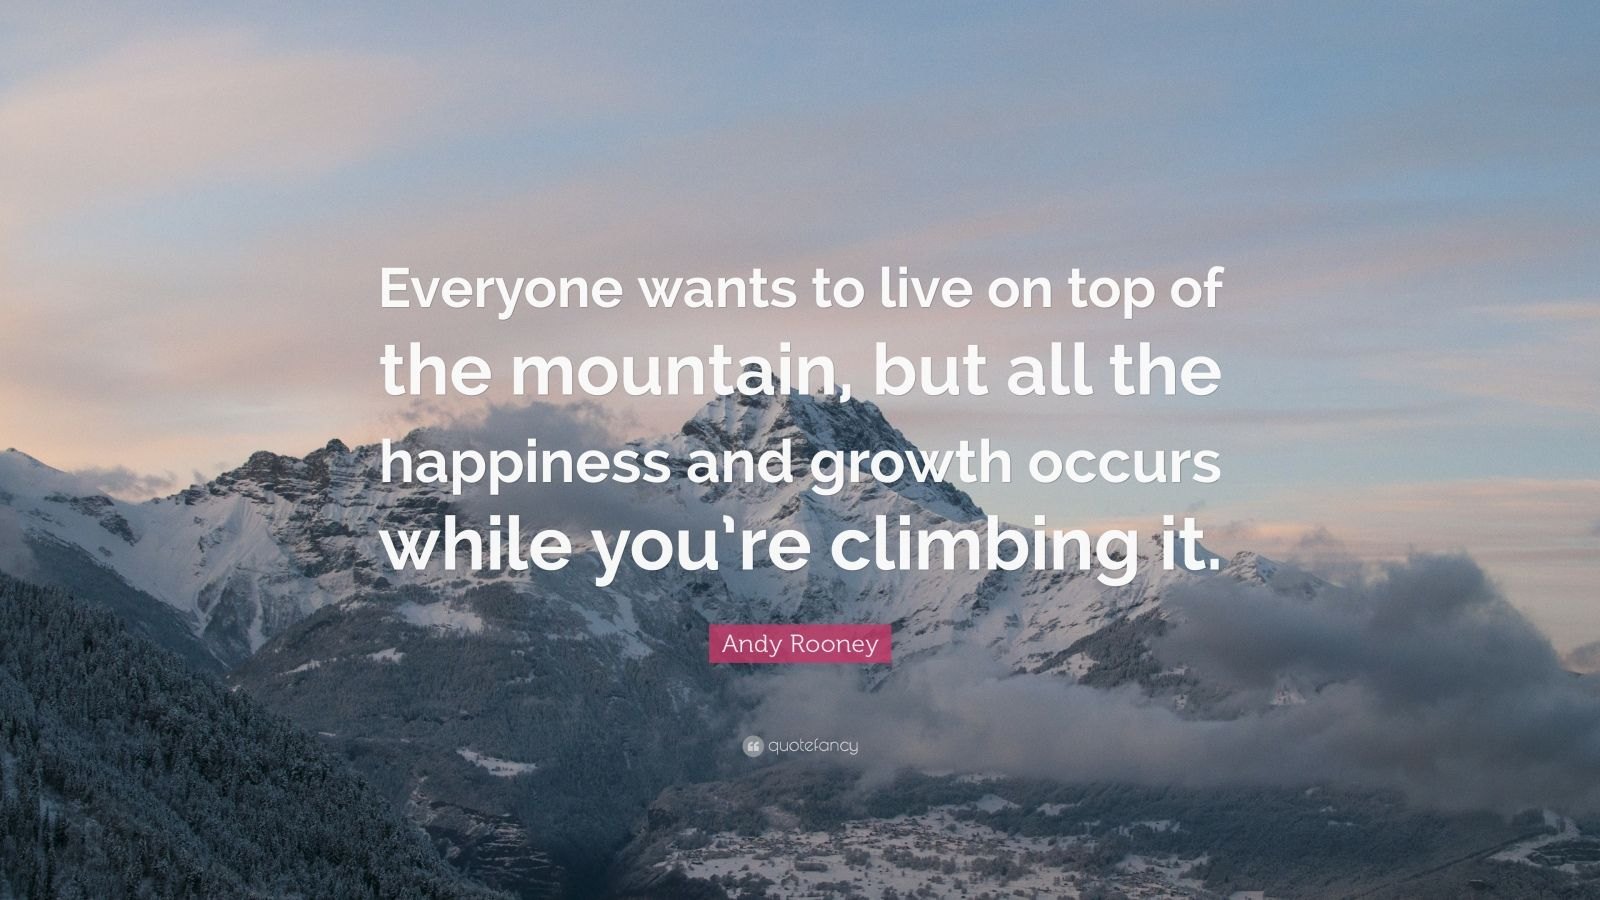 Osho Hd Wallpaper Andy Rooney Quote Everyone Wants To Live On Top Of The